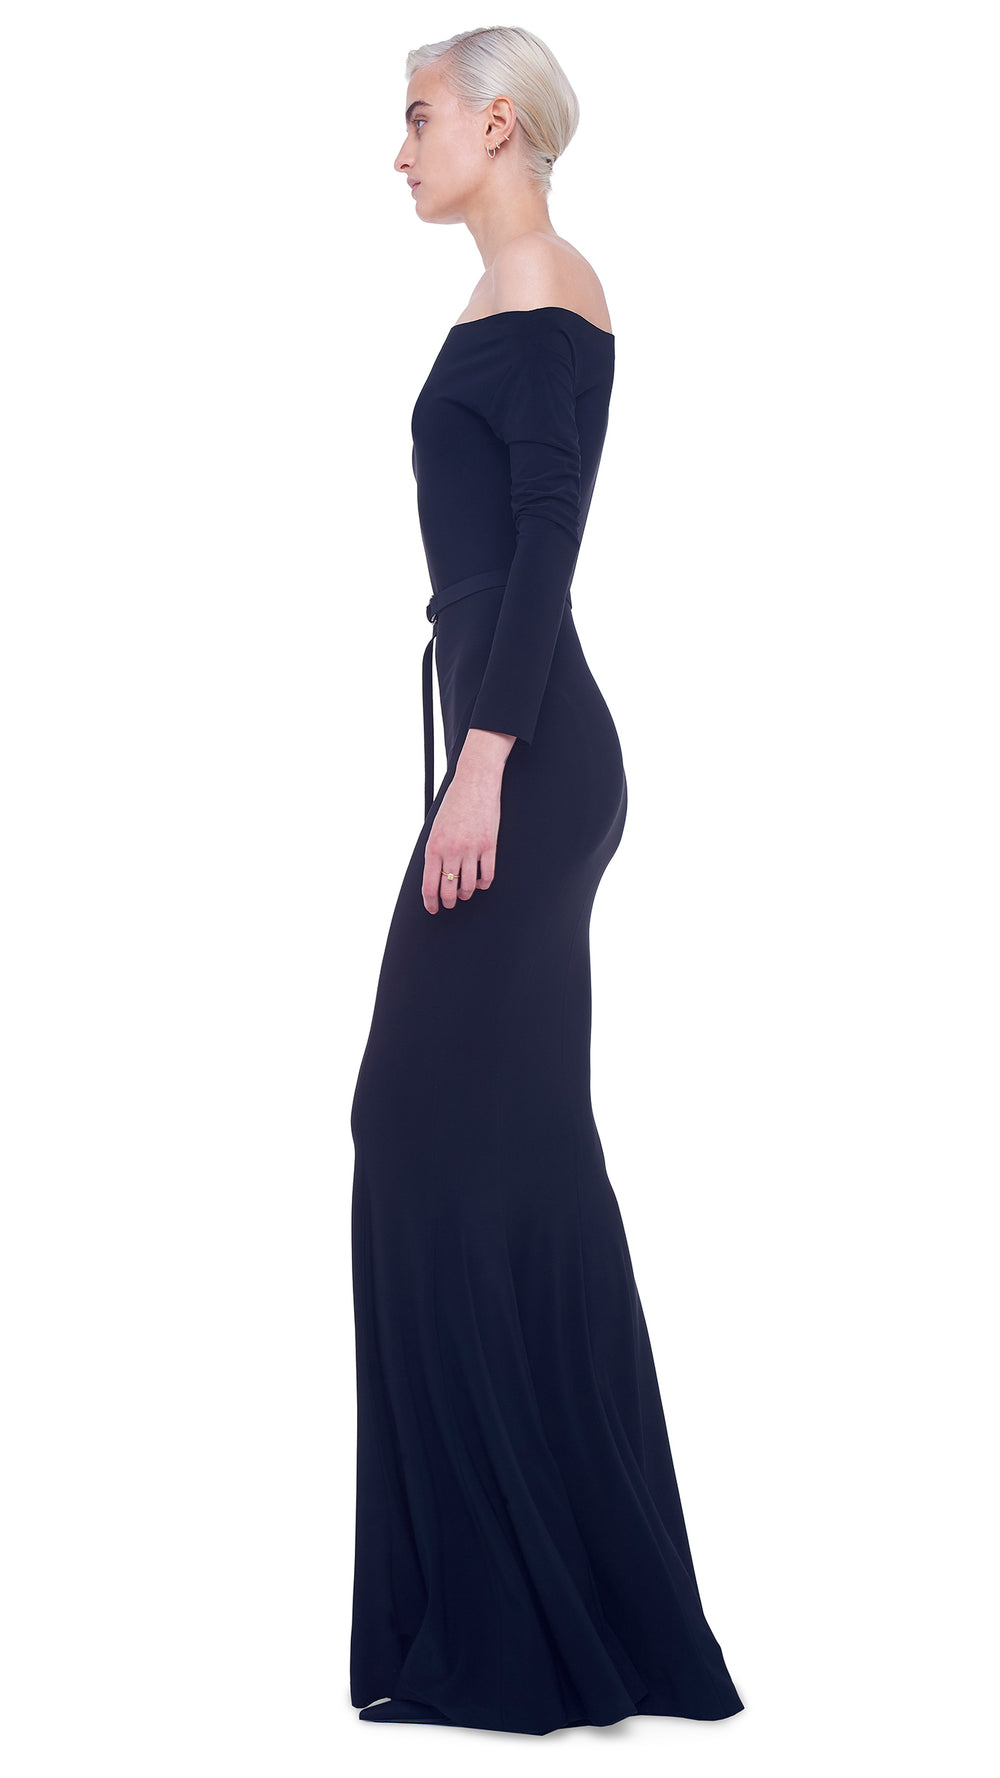 LONG SLEEVE DROP SHOULDER FISHTAIL GOWN